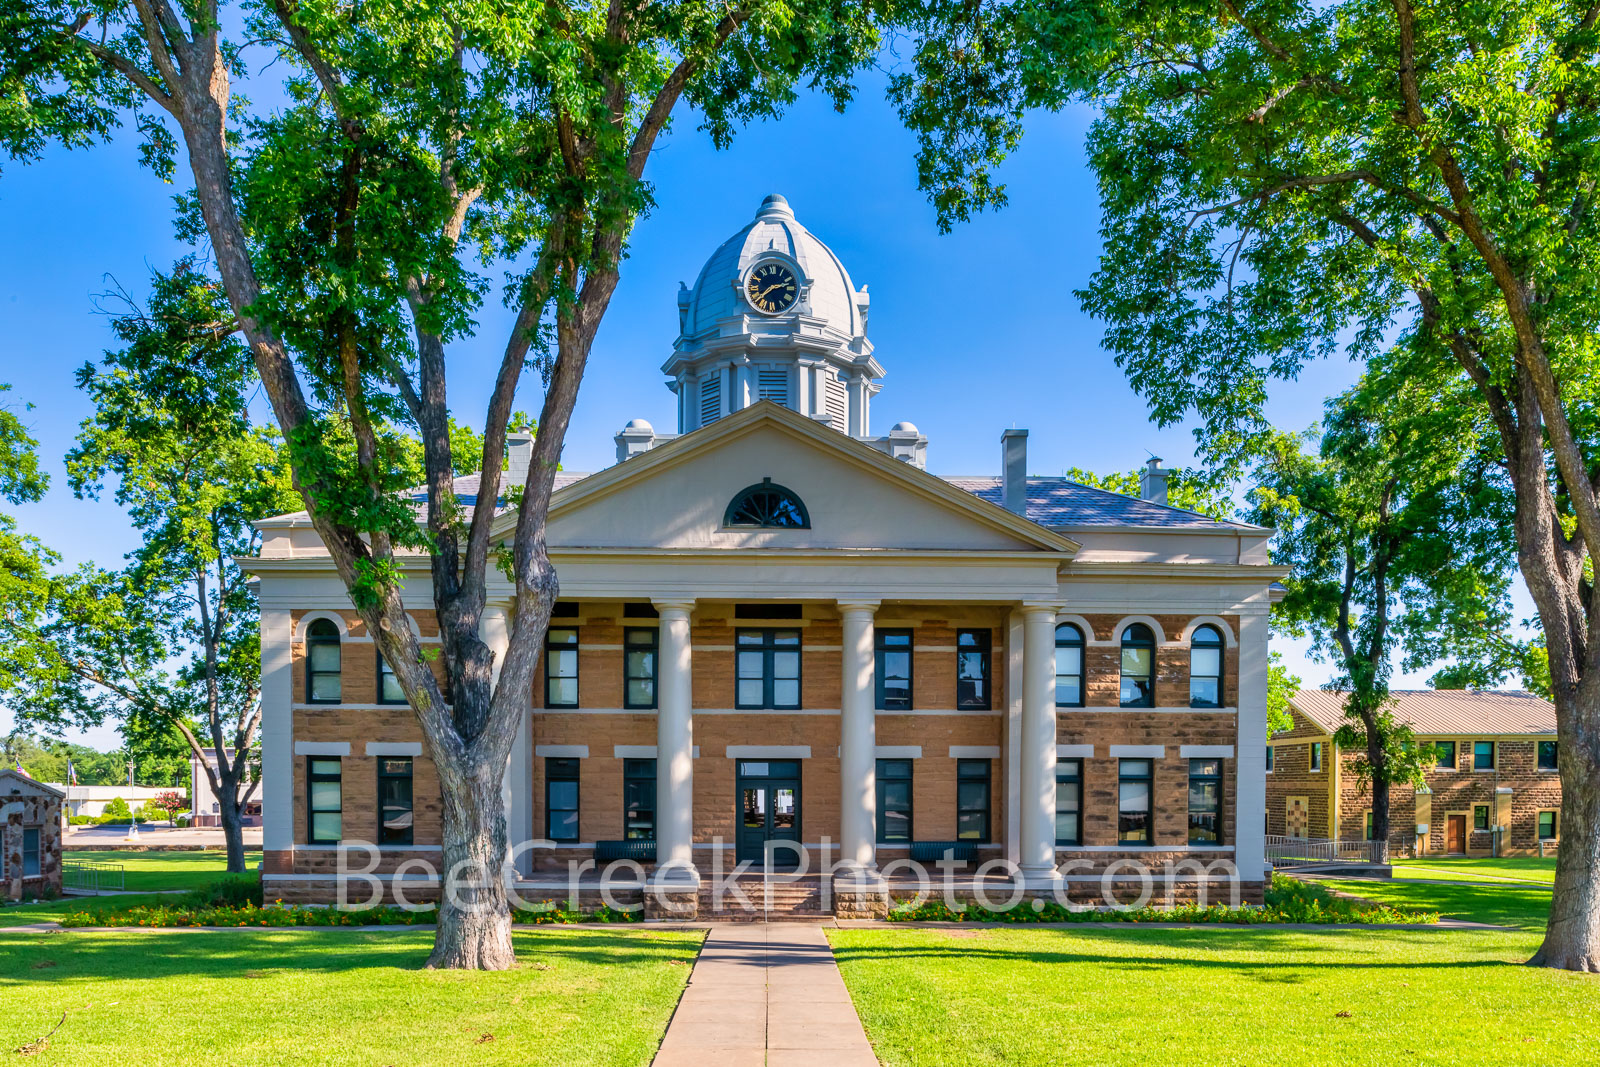 mason county courthouse, mason, county courthouse, texas courthouses, historic, landmark, texas, rural, , photo